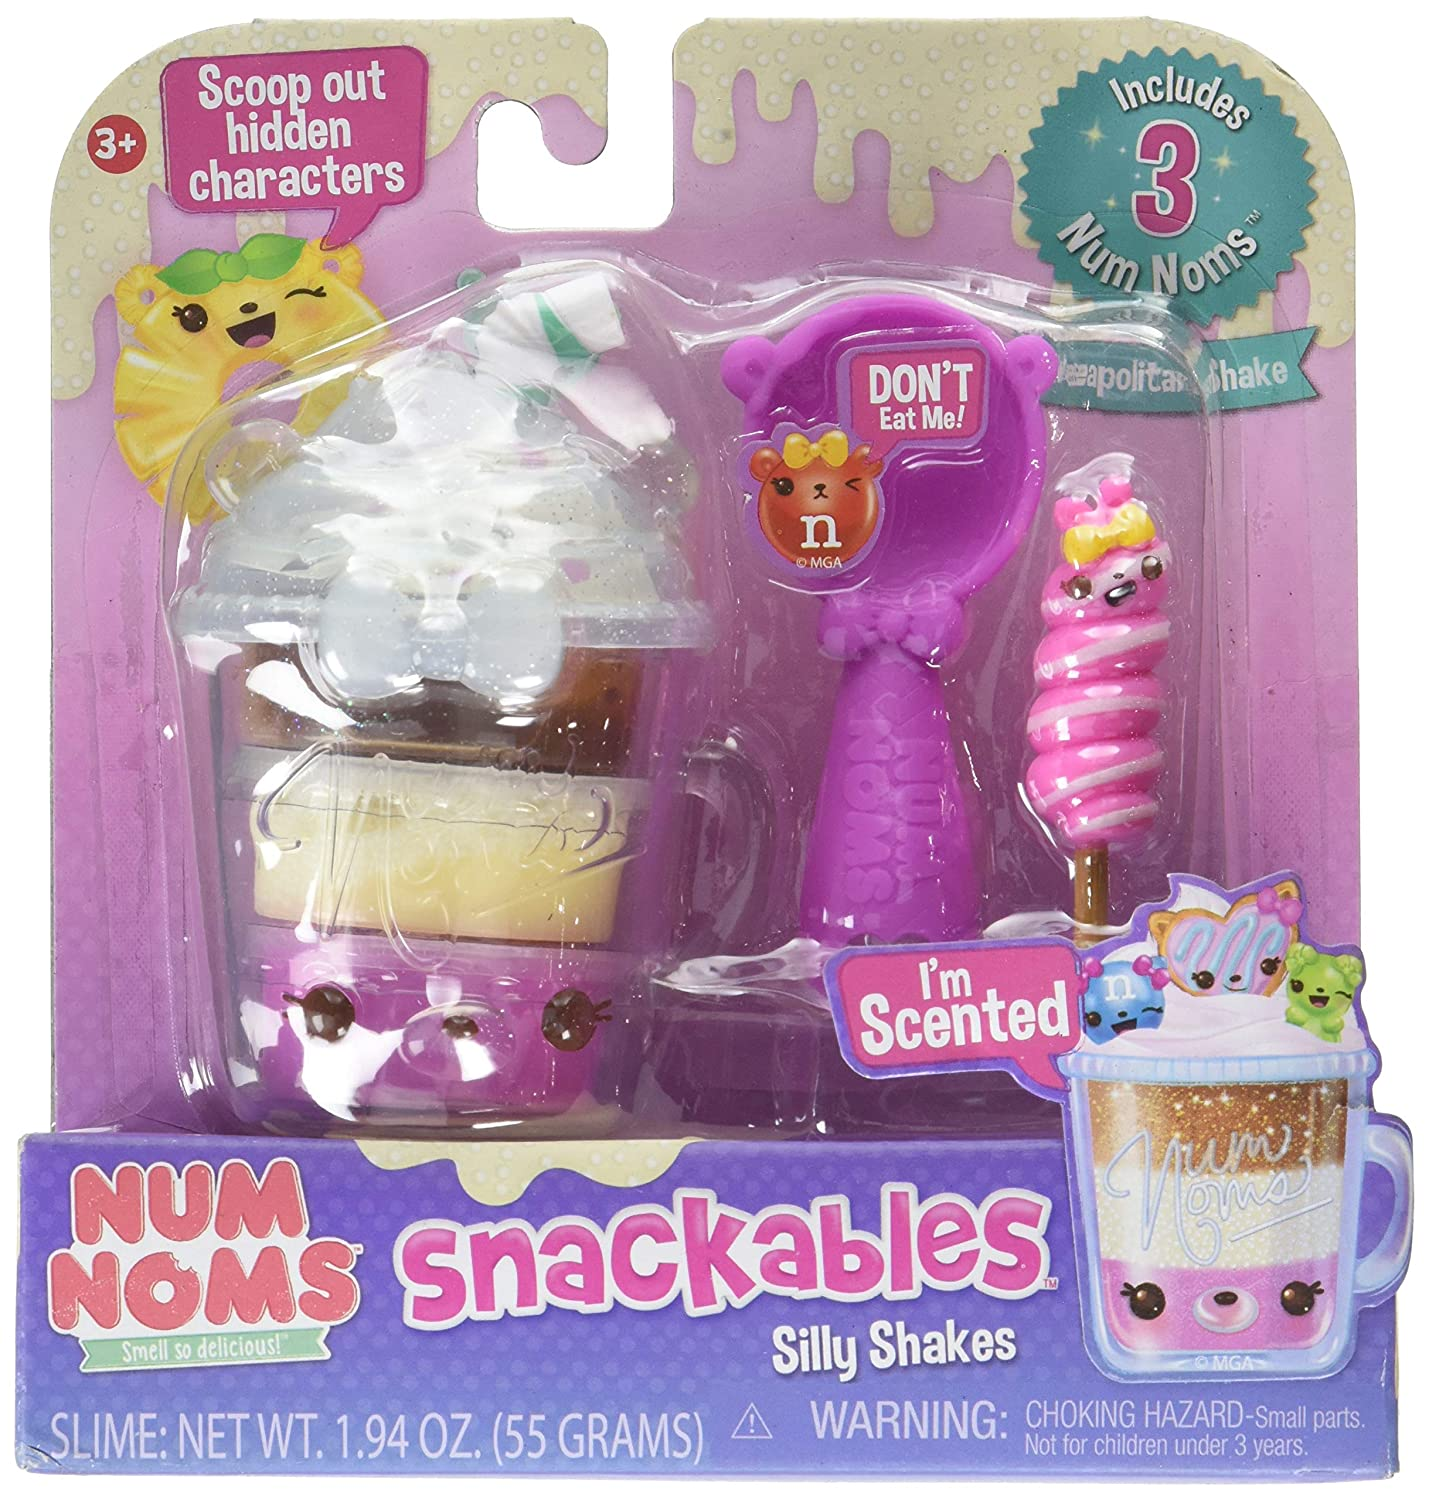 Num Noms 554370 Snackables Silly Shakes- Neapolitan Shake, Multicolor